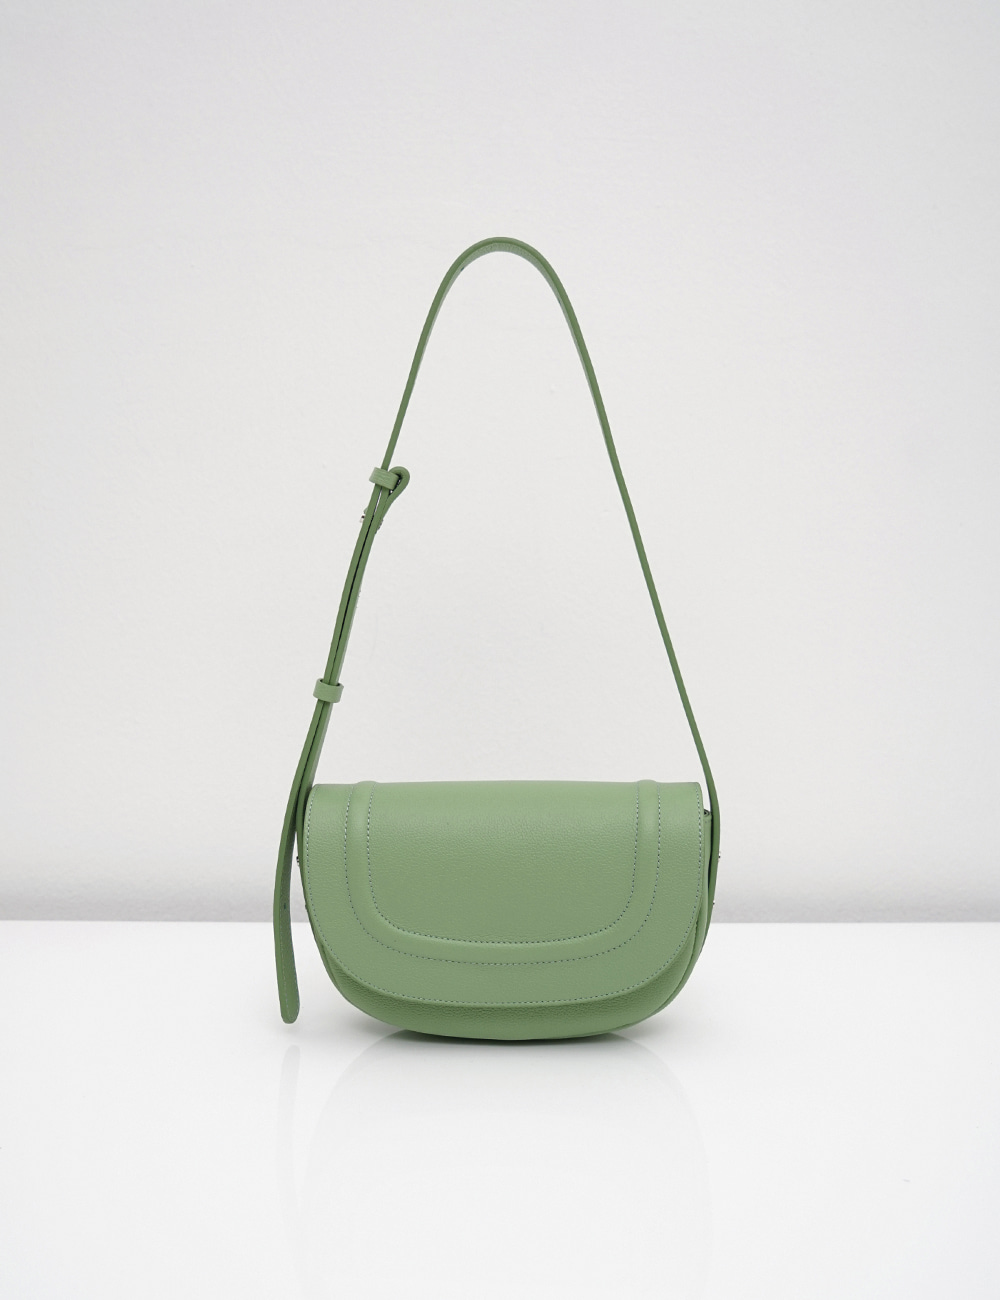 [New Arrivals] Loni small embo / apple green